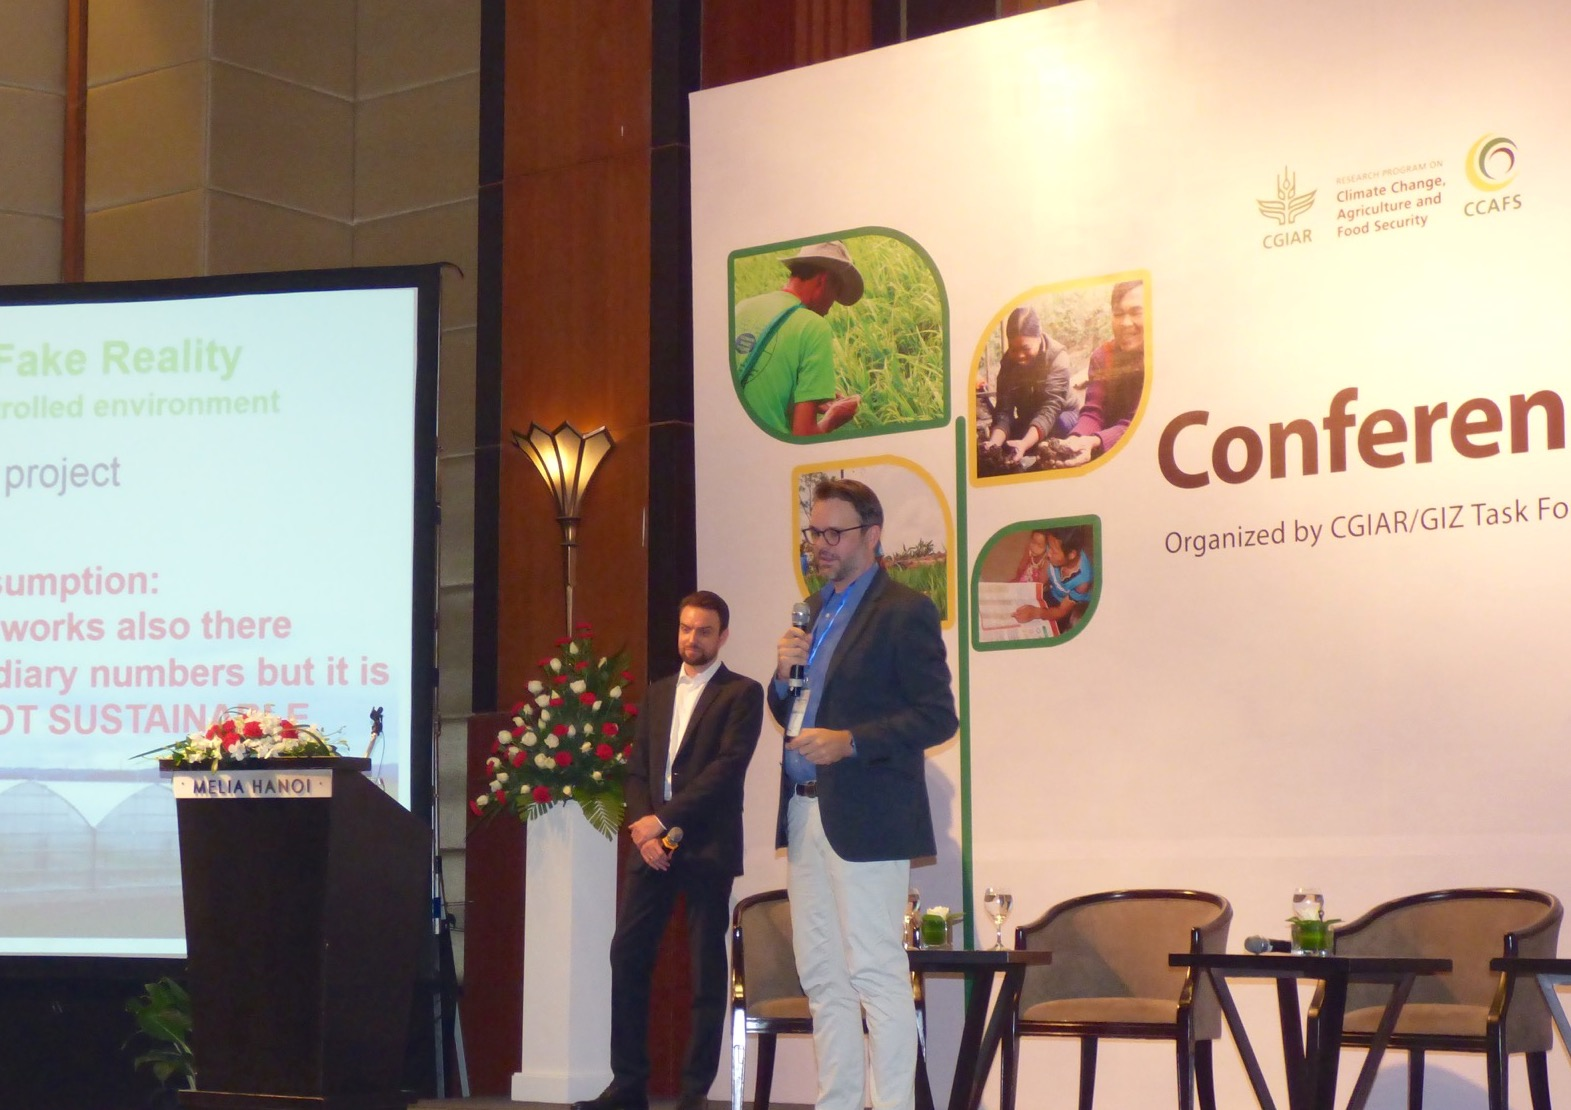 Lennart Woltering presents at the CCAFS SEA Conference in Vietnam.